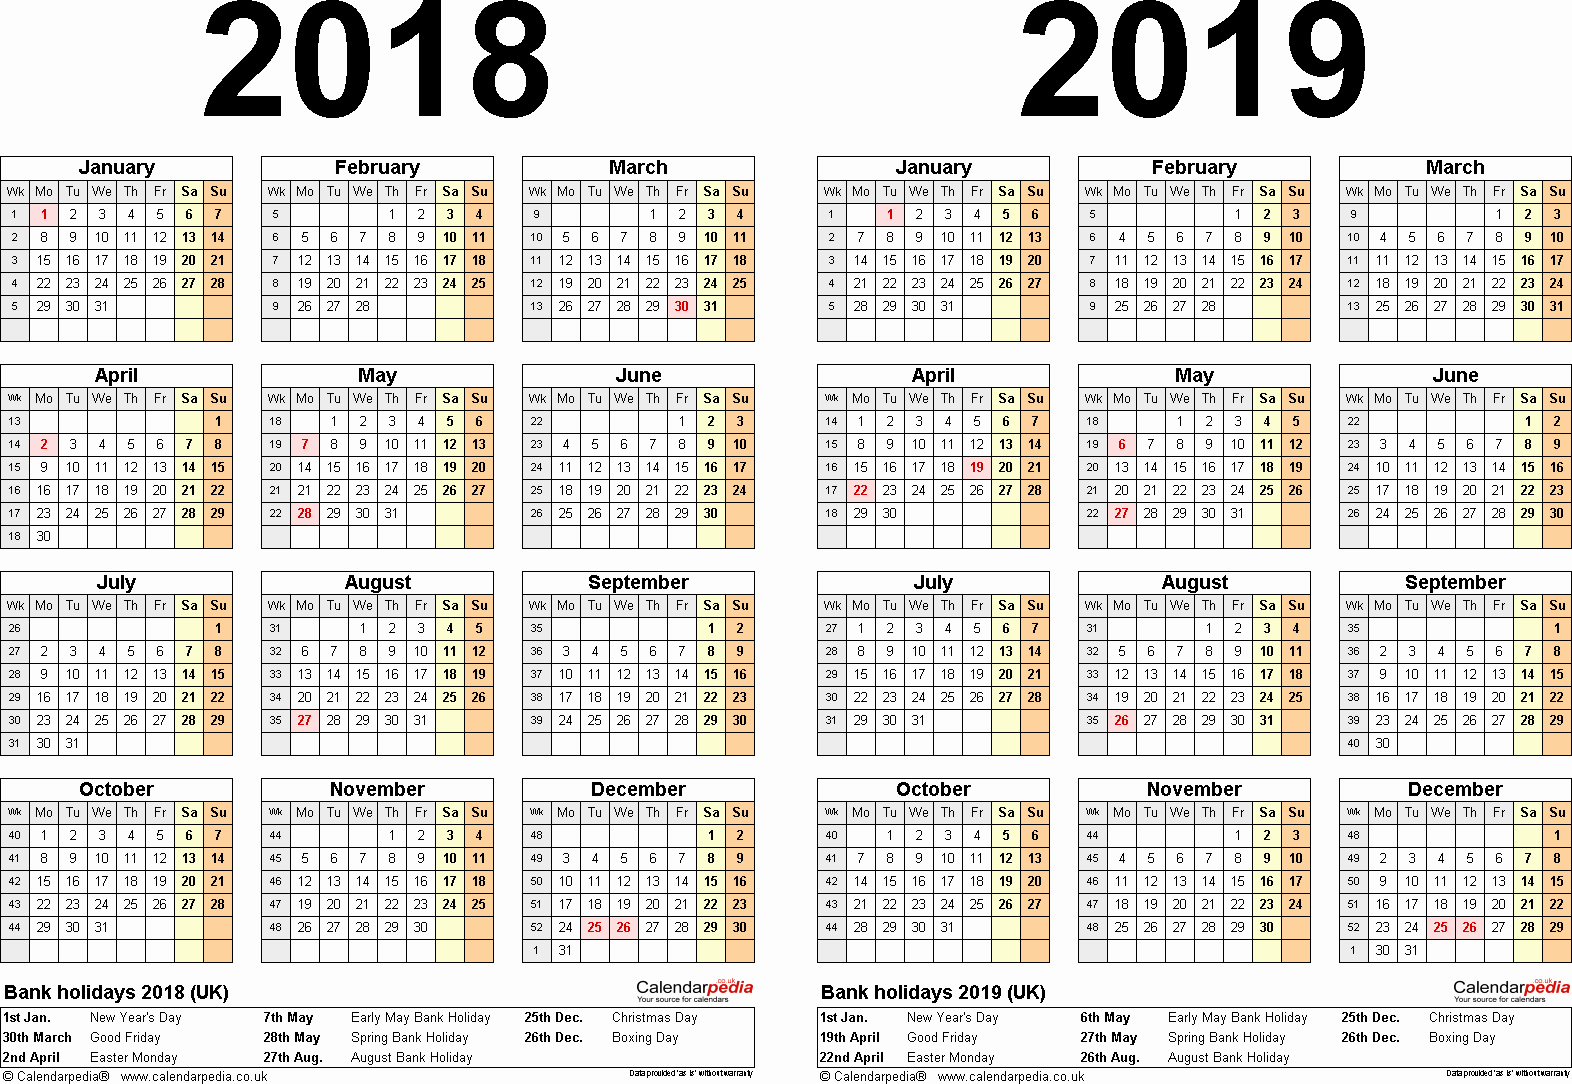 School Calendar 2018 19 Template Inspirational Two Year Calendars for 2018 & 2019 Uk for Pdf